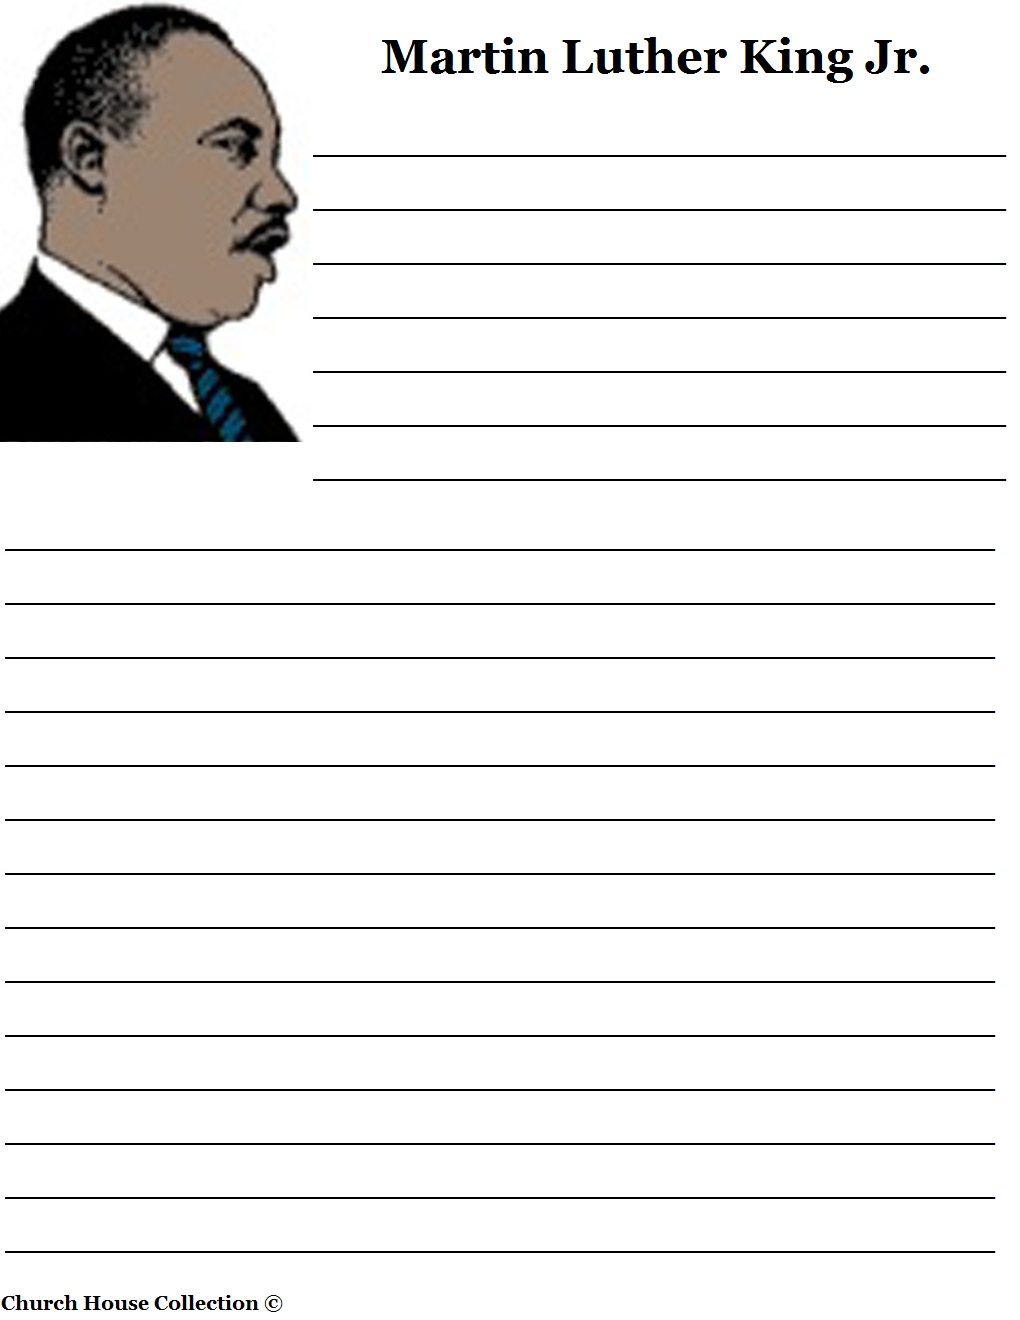 martin luther paper - martin luther king jr dr martin luther king jr not only spoke with purpose but also with a style unlike any others he was an inspirational speaker and a motivational leader dr martin luther king jr, due to his importance in the civil rights movement of the 1950's and 1960's, motivated masses with his tremendous speeches and actions dr.